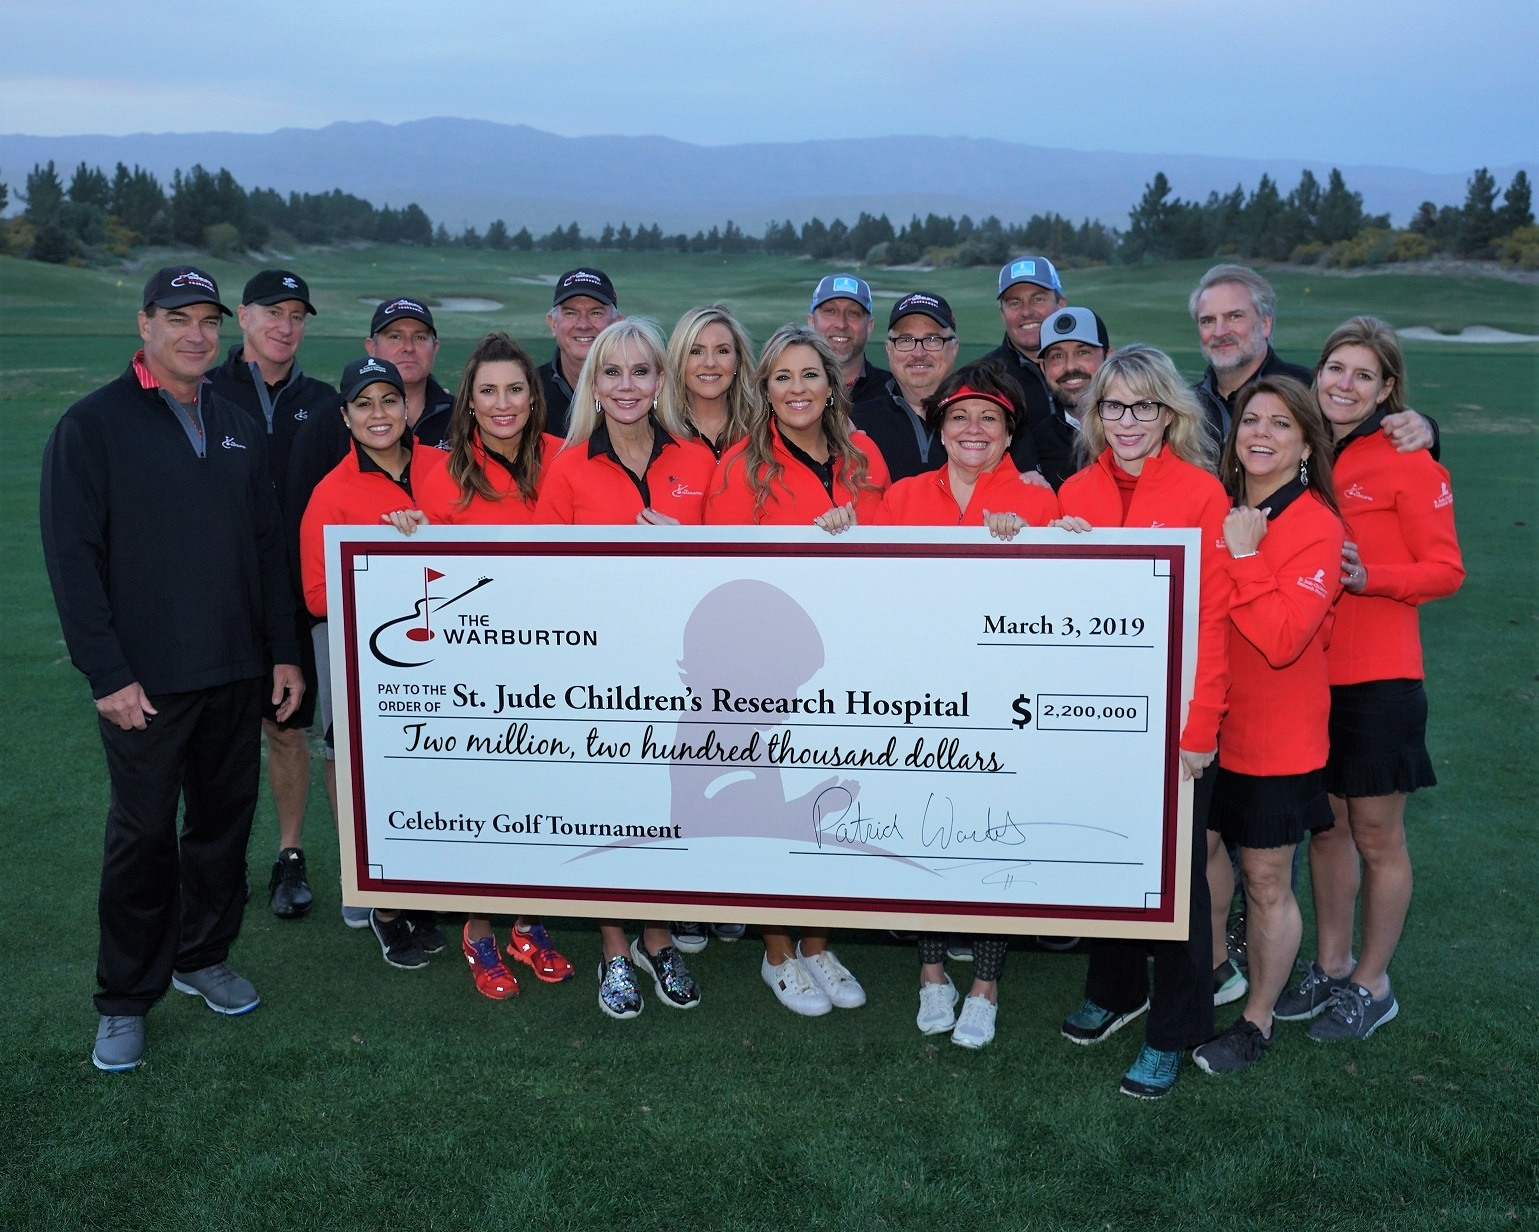 The Warburton Celebrity Golf Tournament At The Classic Club Raises $2.2 Million